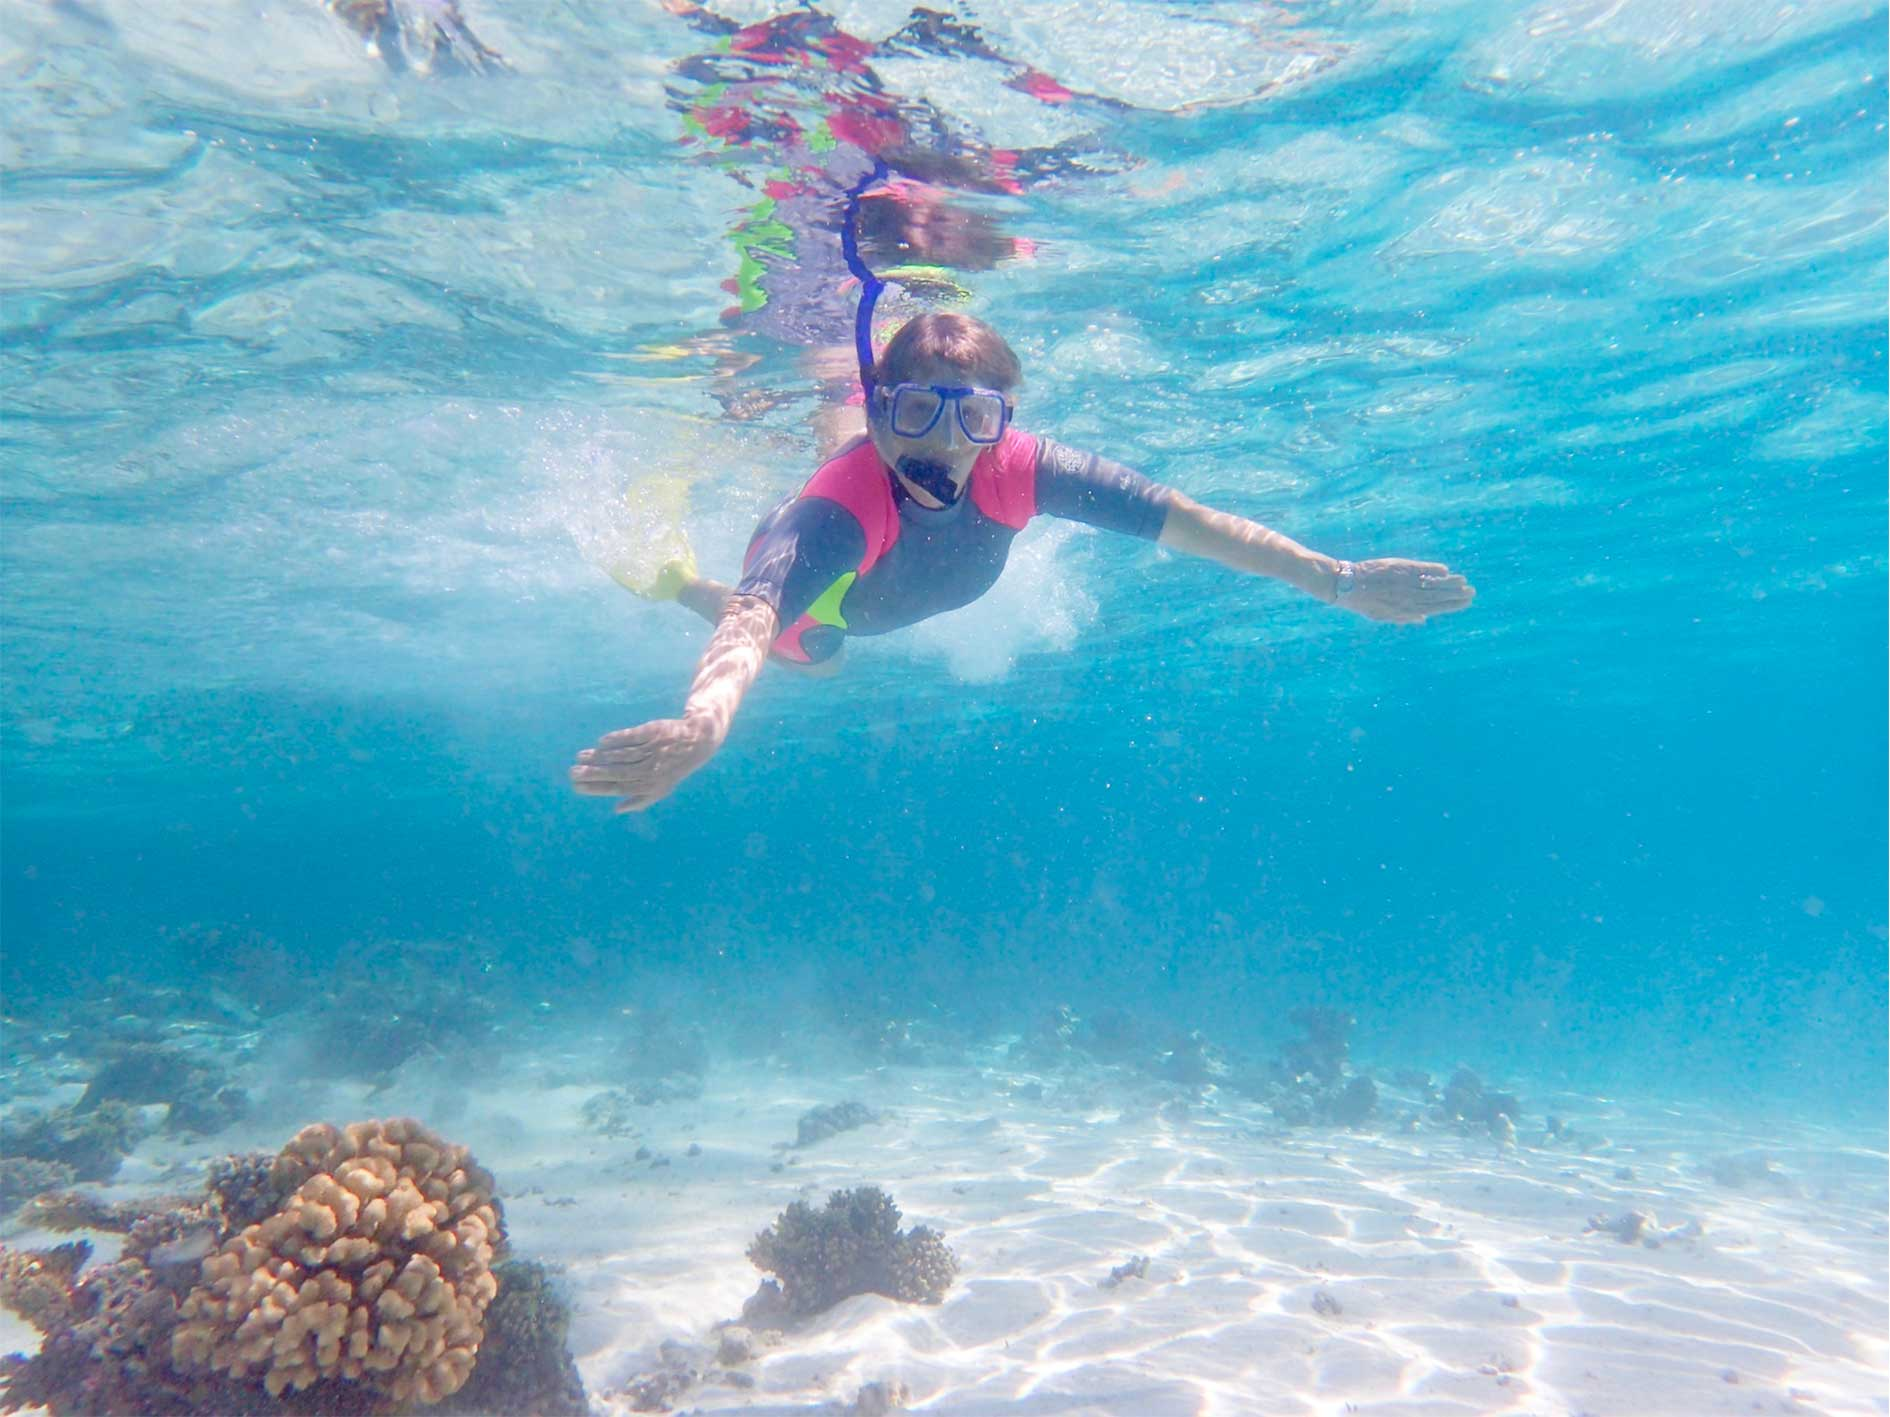 lady snorkelling through clear blue water above corals at Ningaloo Reef